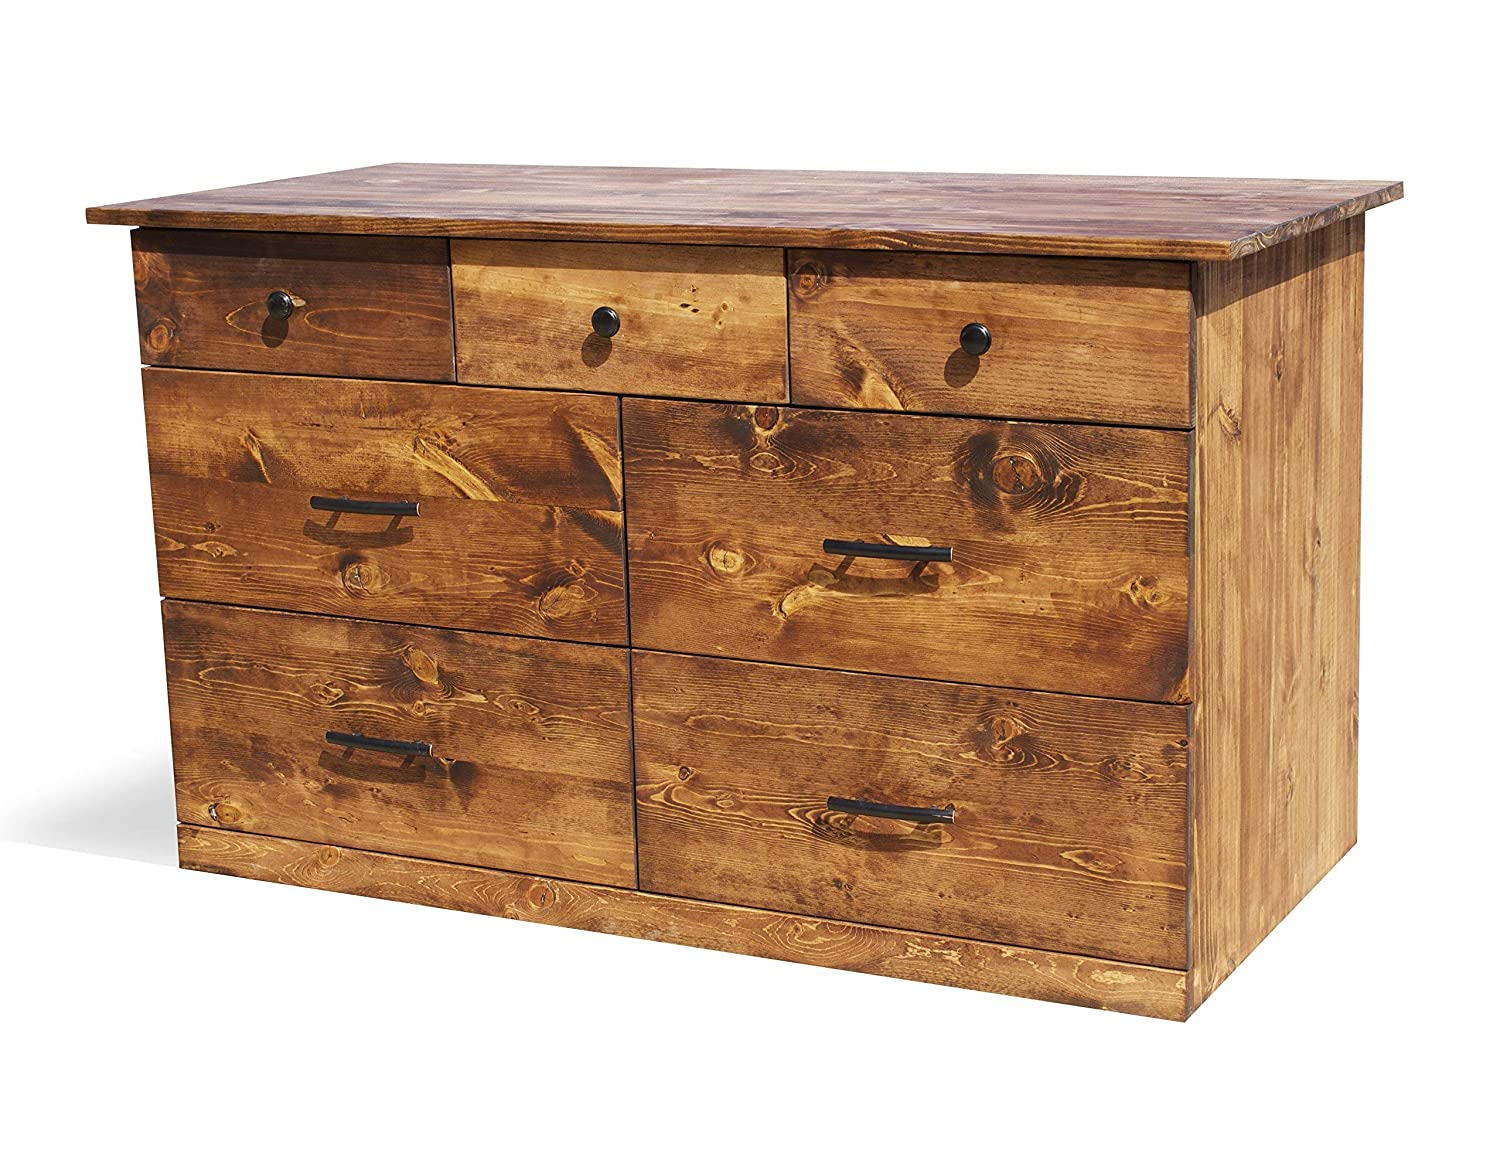 Amazon.com: Solid Wood Rustic Dresser | Home & Living ...